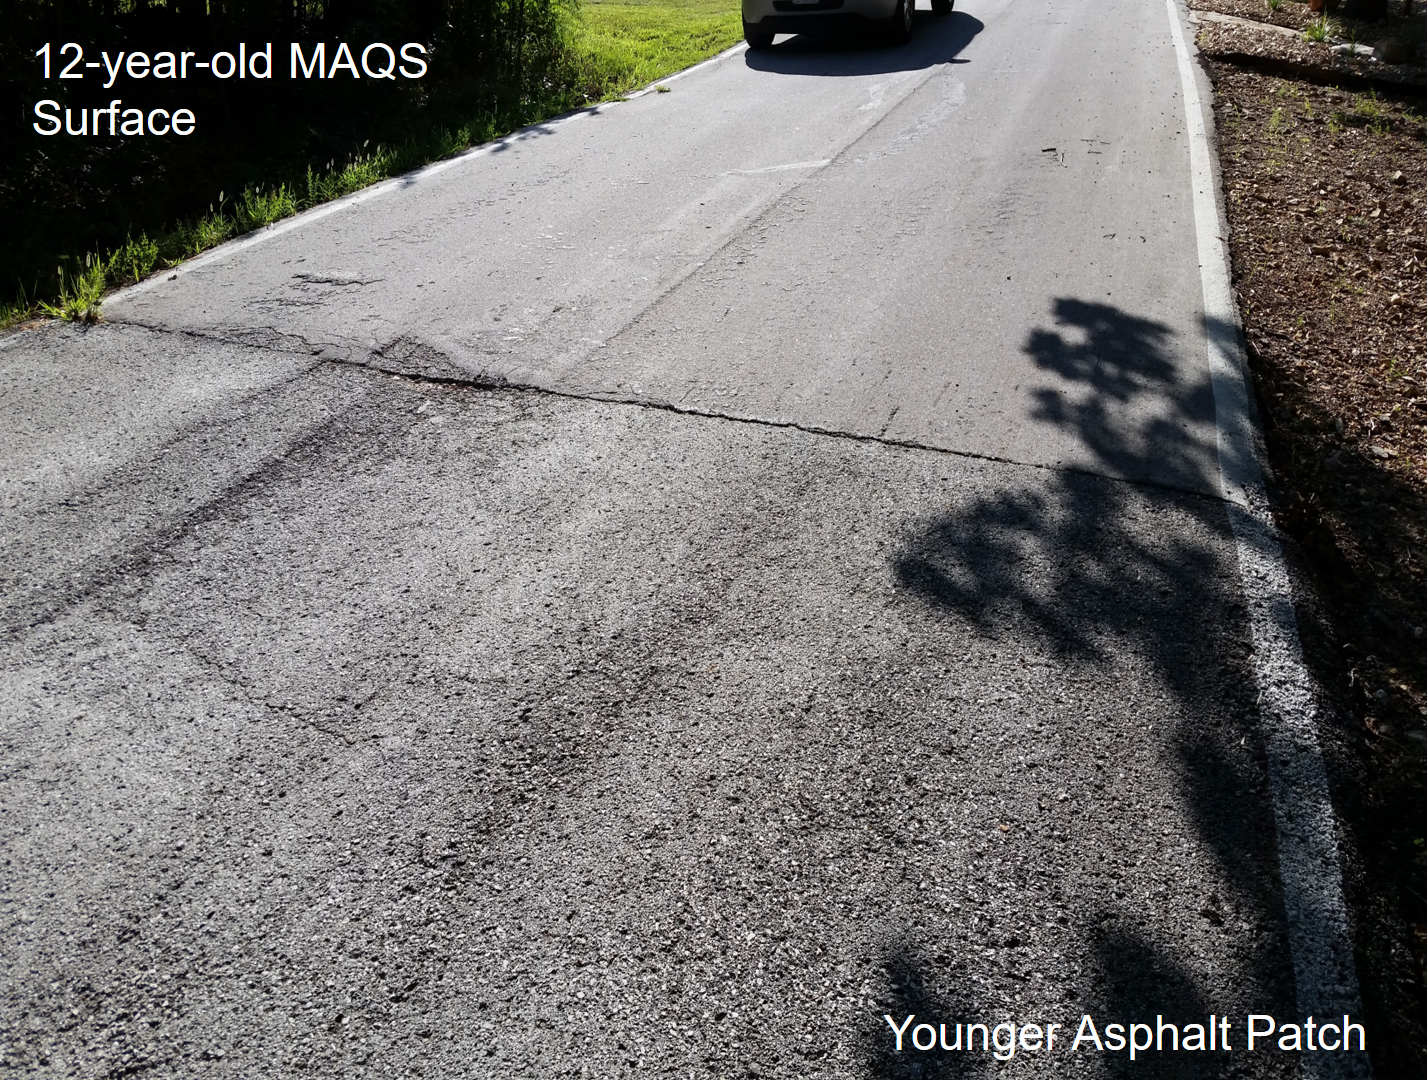 12 year-old MAQS Surface compared to a younger asphalt patch